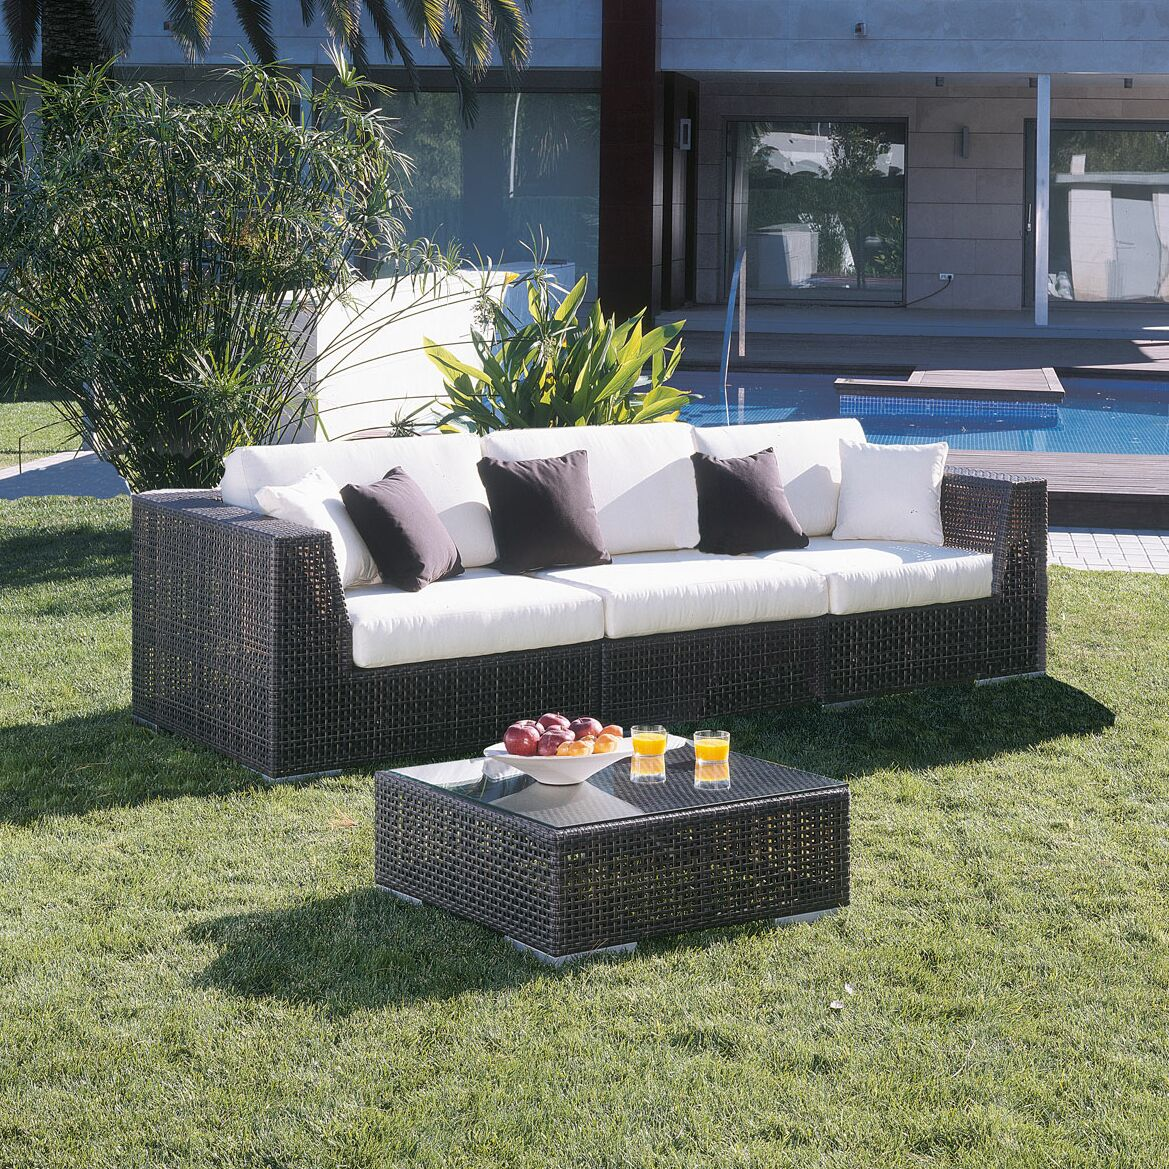 Soho Patio Sofa with Sunbrella Cushions Color: Canvas Spa